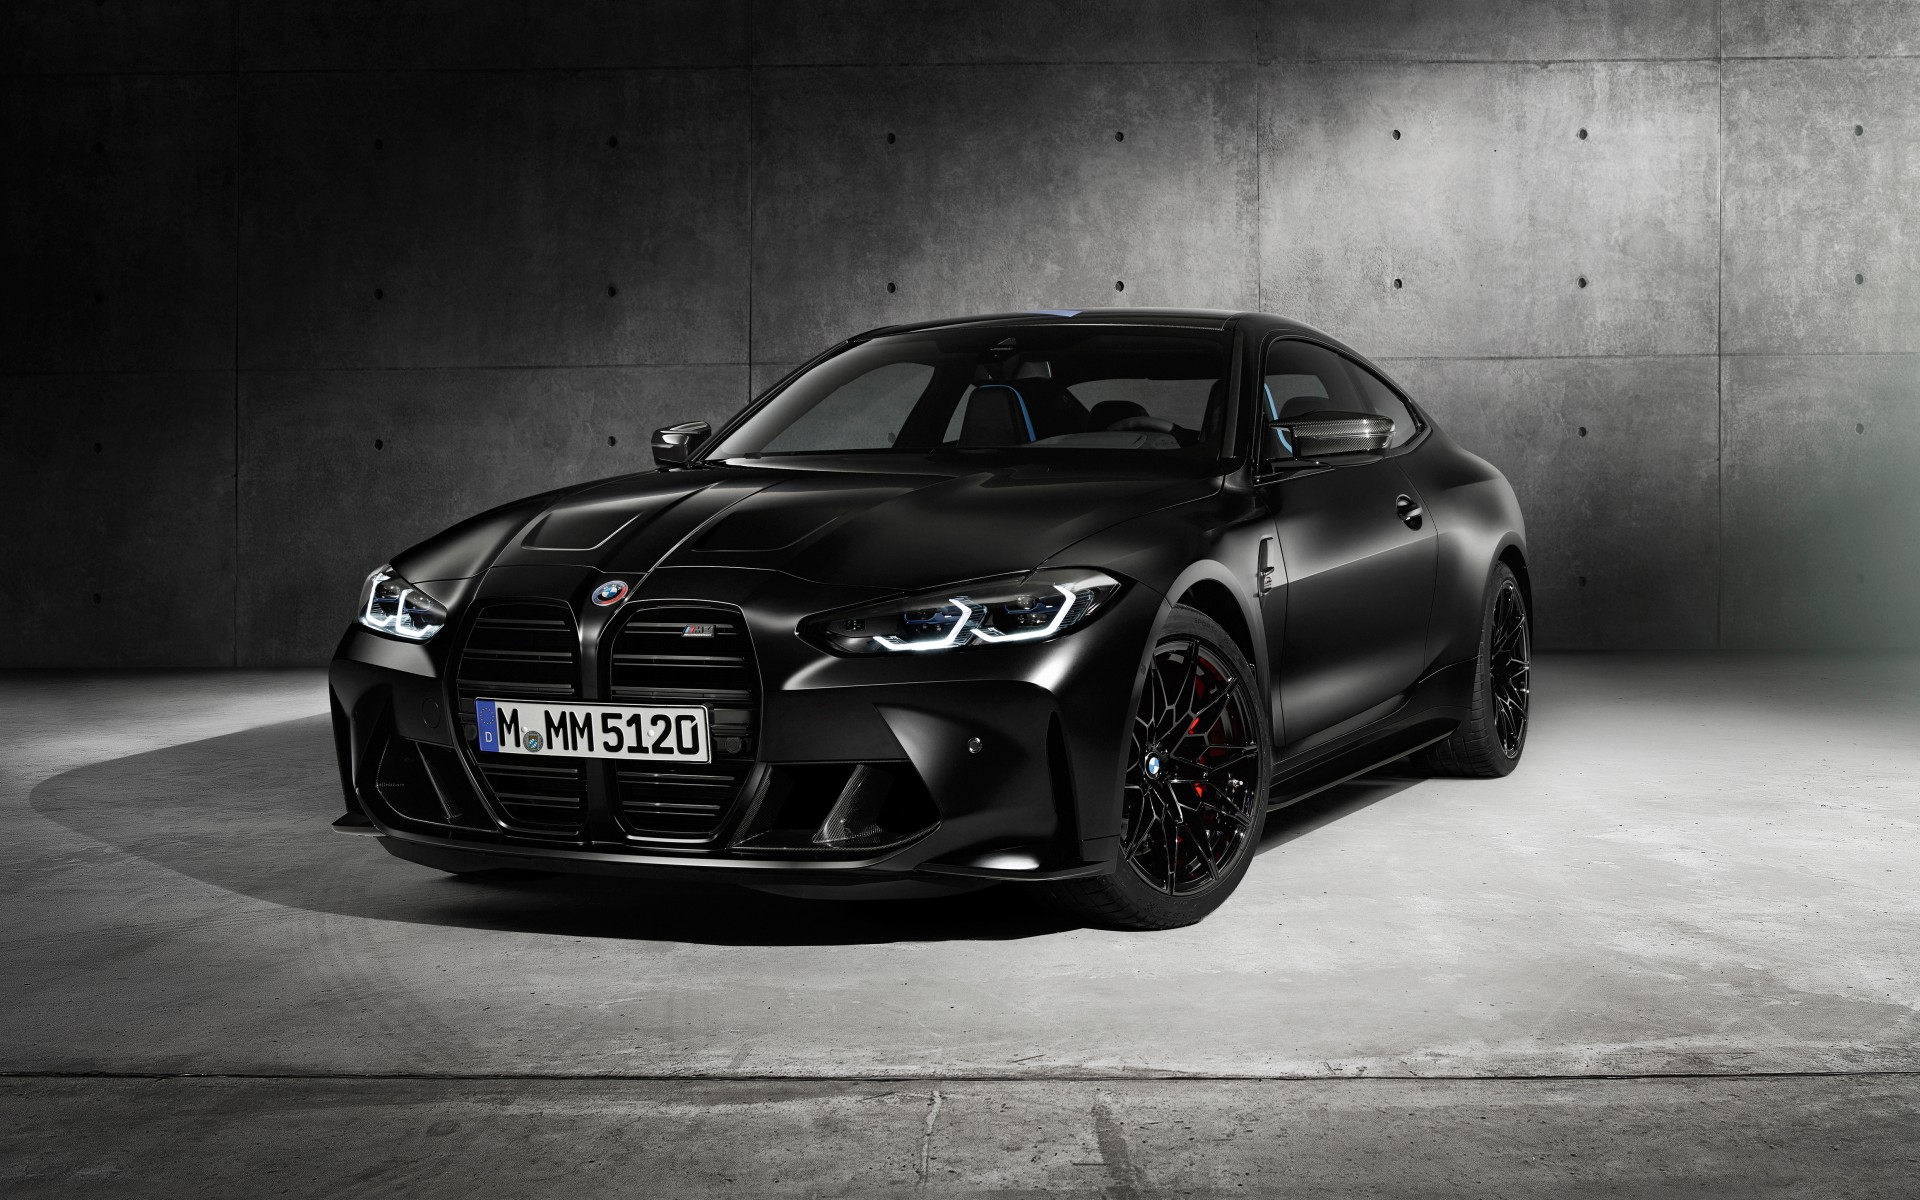 4k Wallpapers For BMW Users